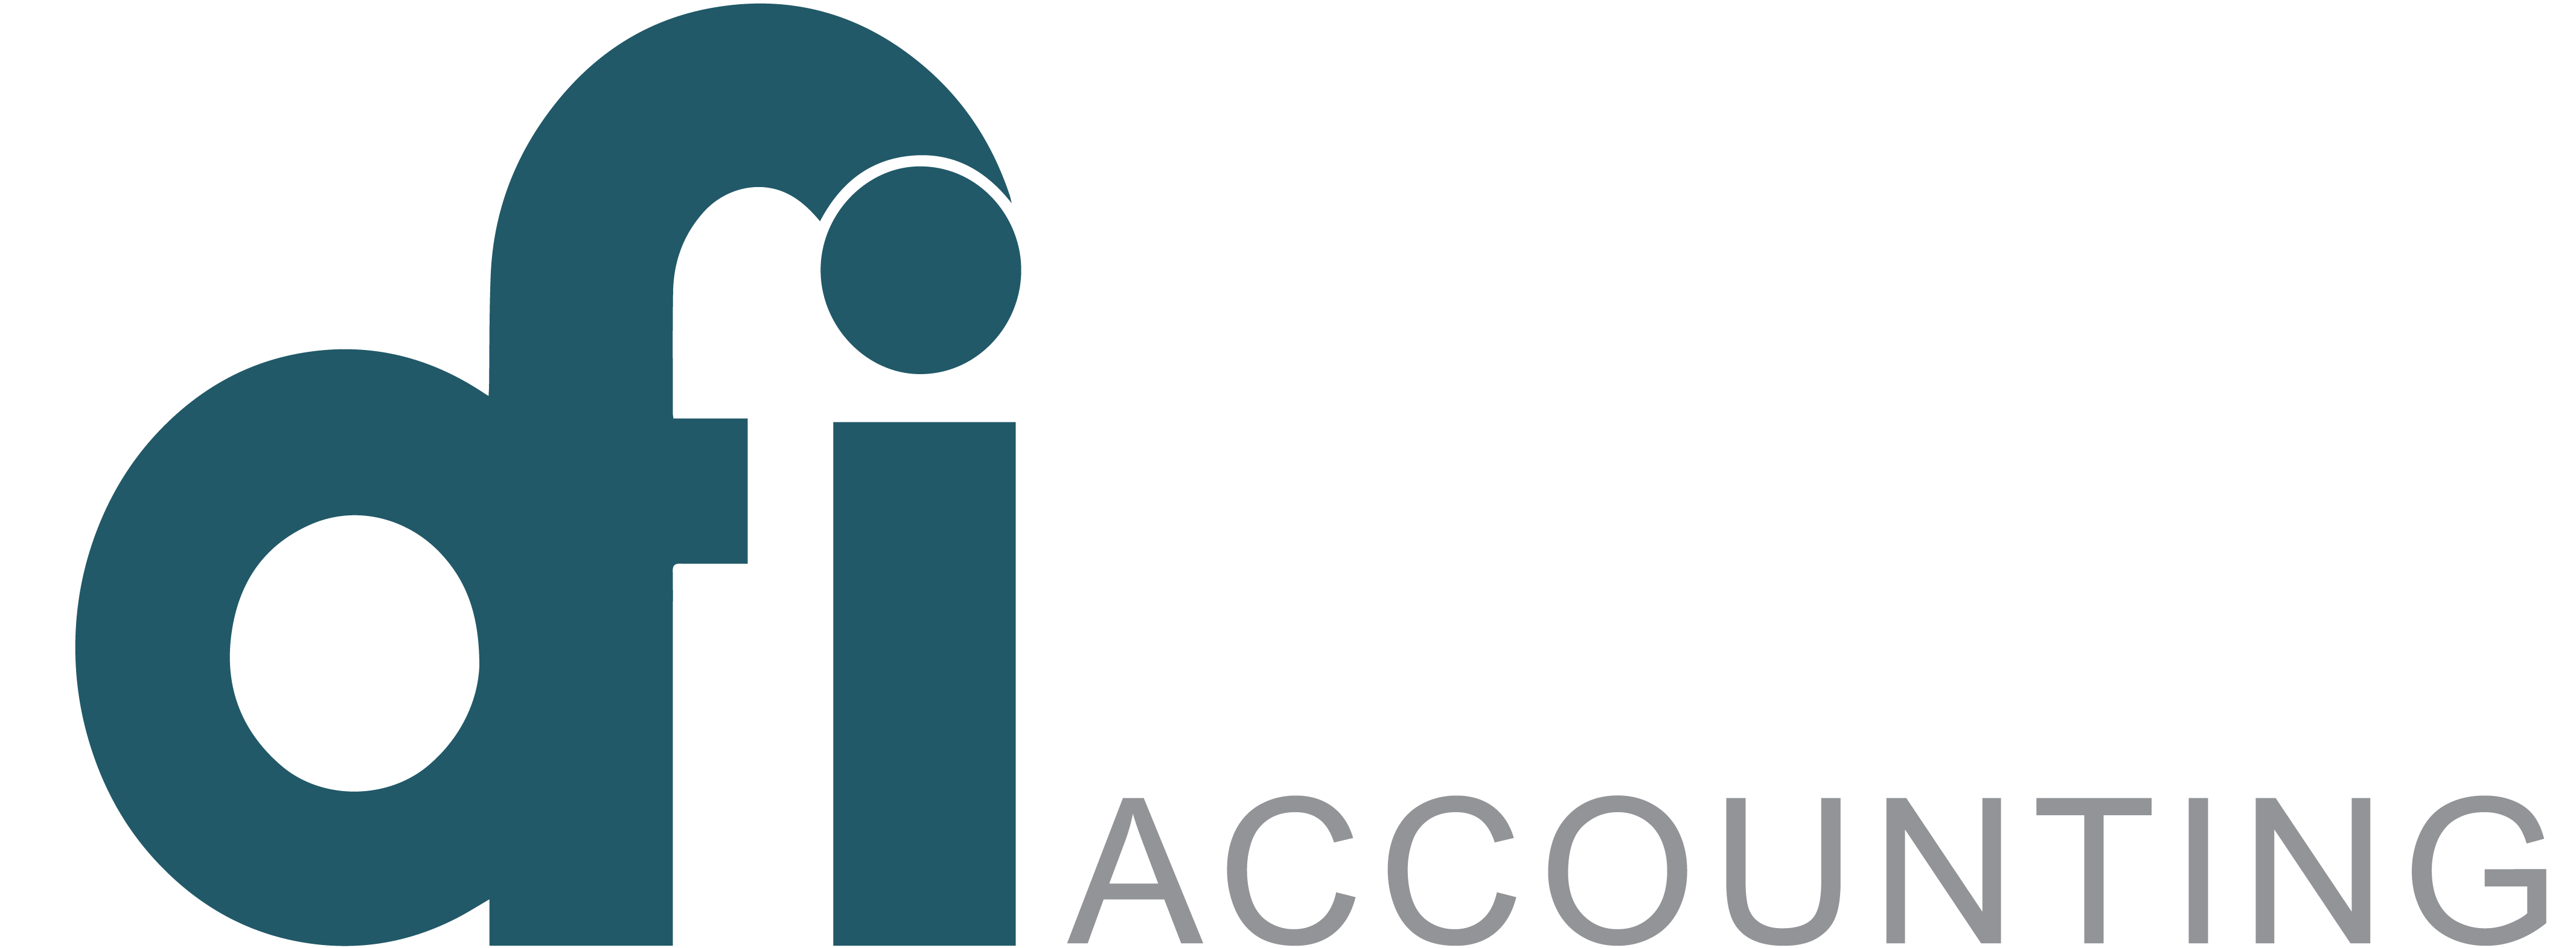 Dfi Accounting